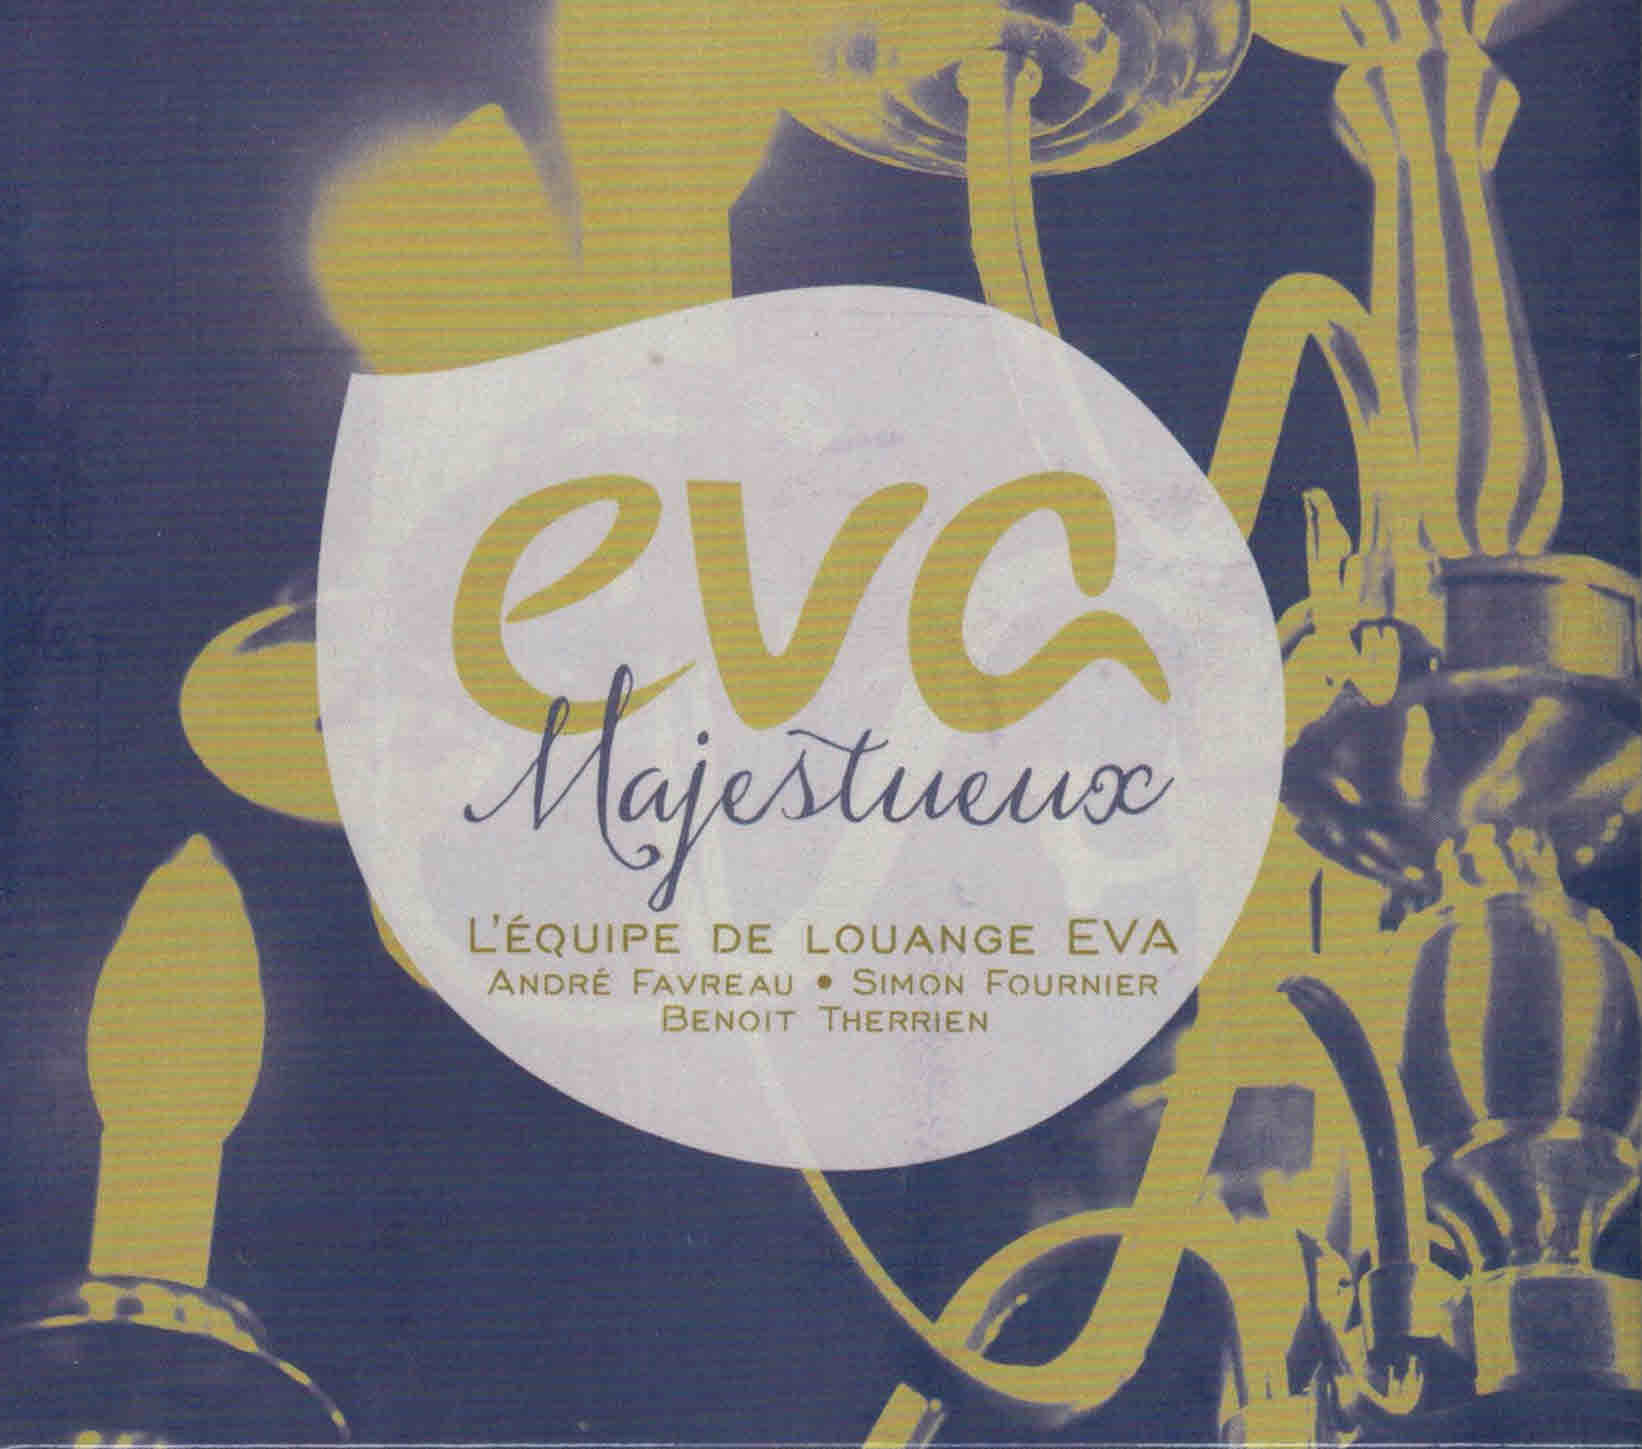 CD Eva Majestueux